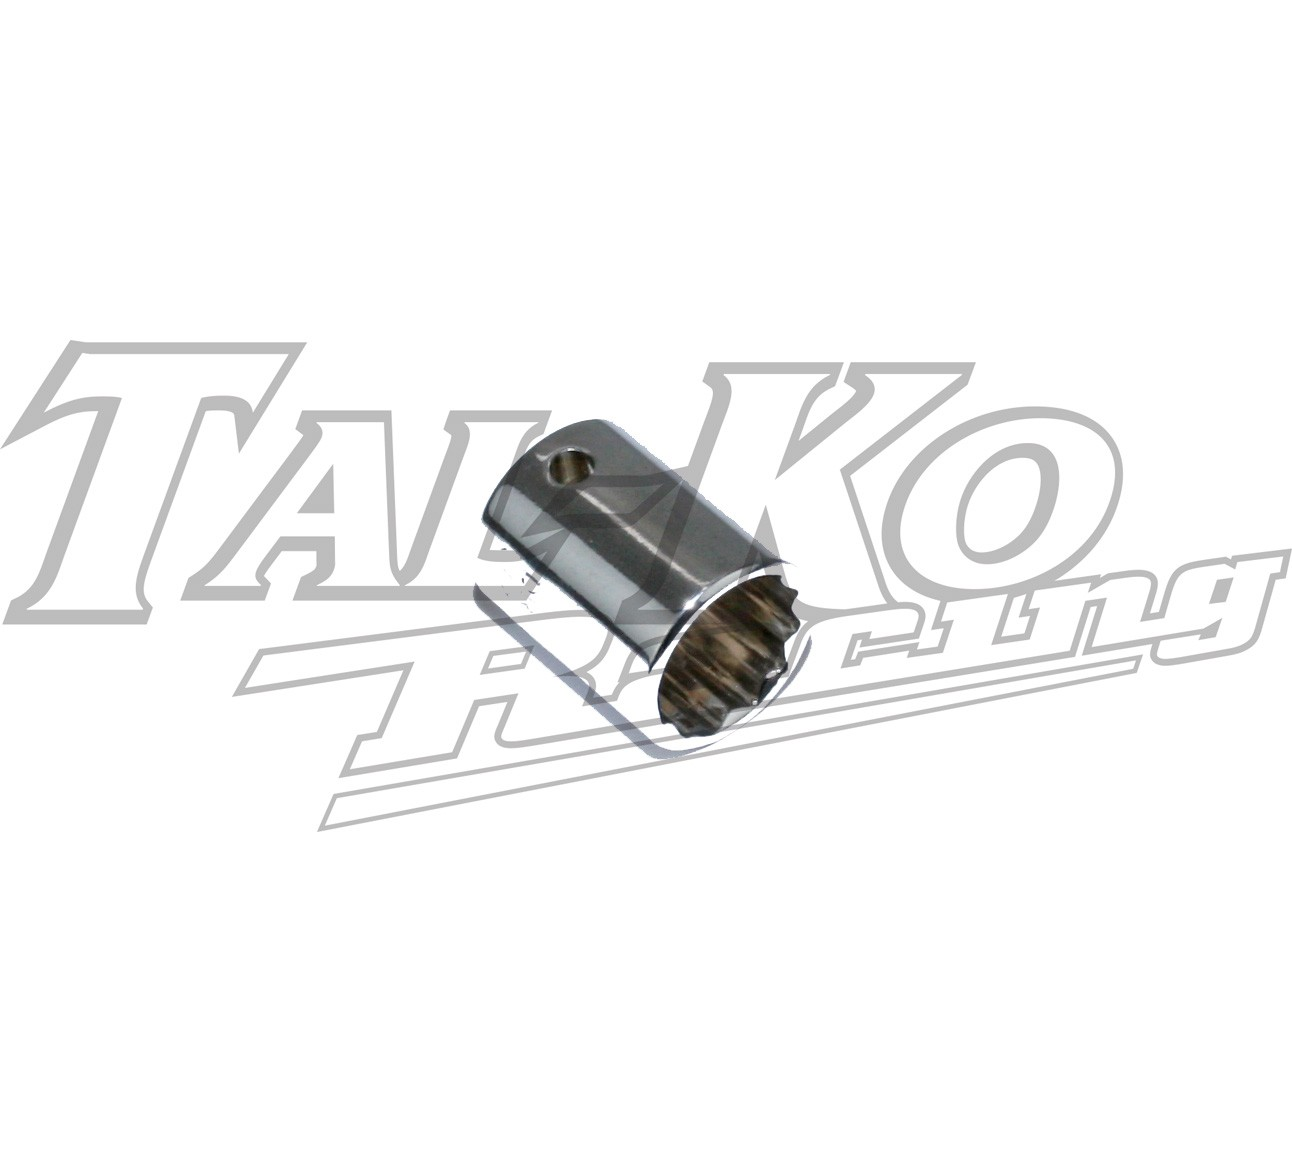 "TKM BT82 SOCKET 3/8"" x 17mm A/F"